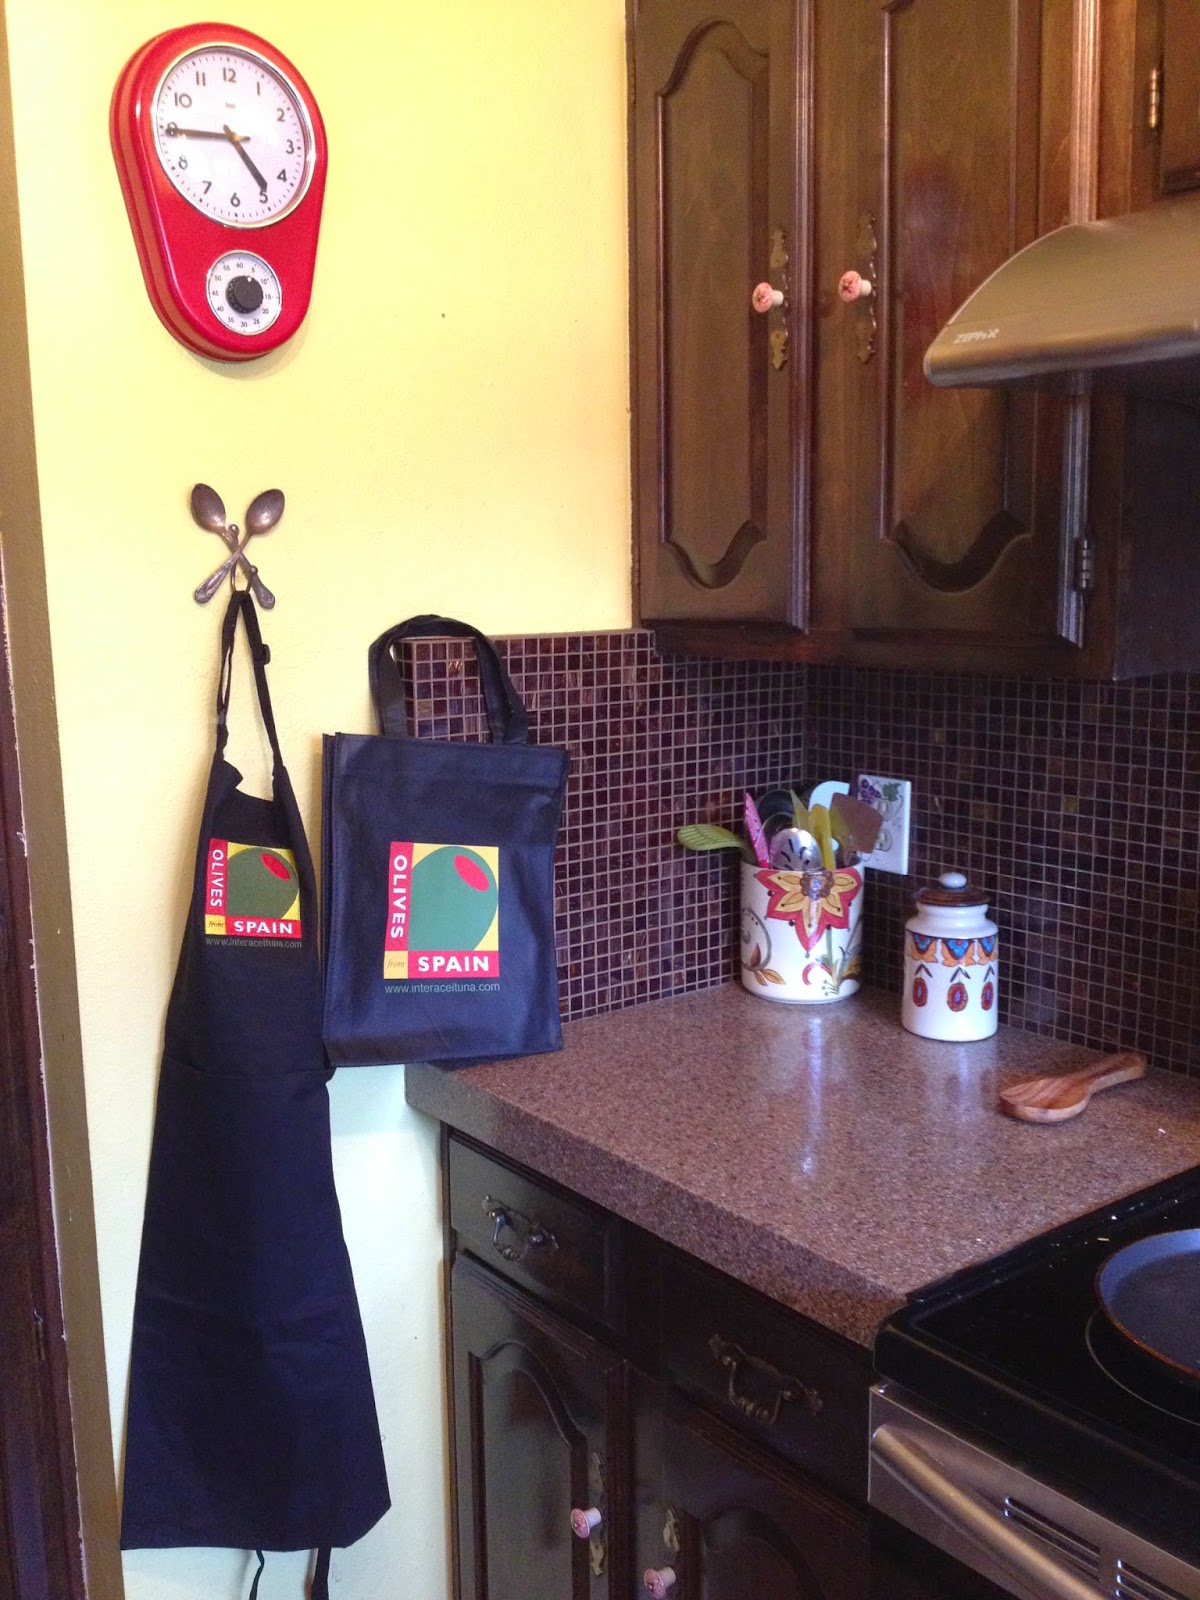 Olives From Spain Apron and Tote Bag